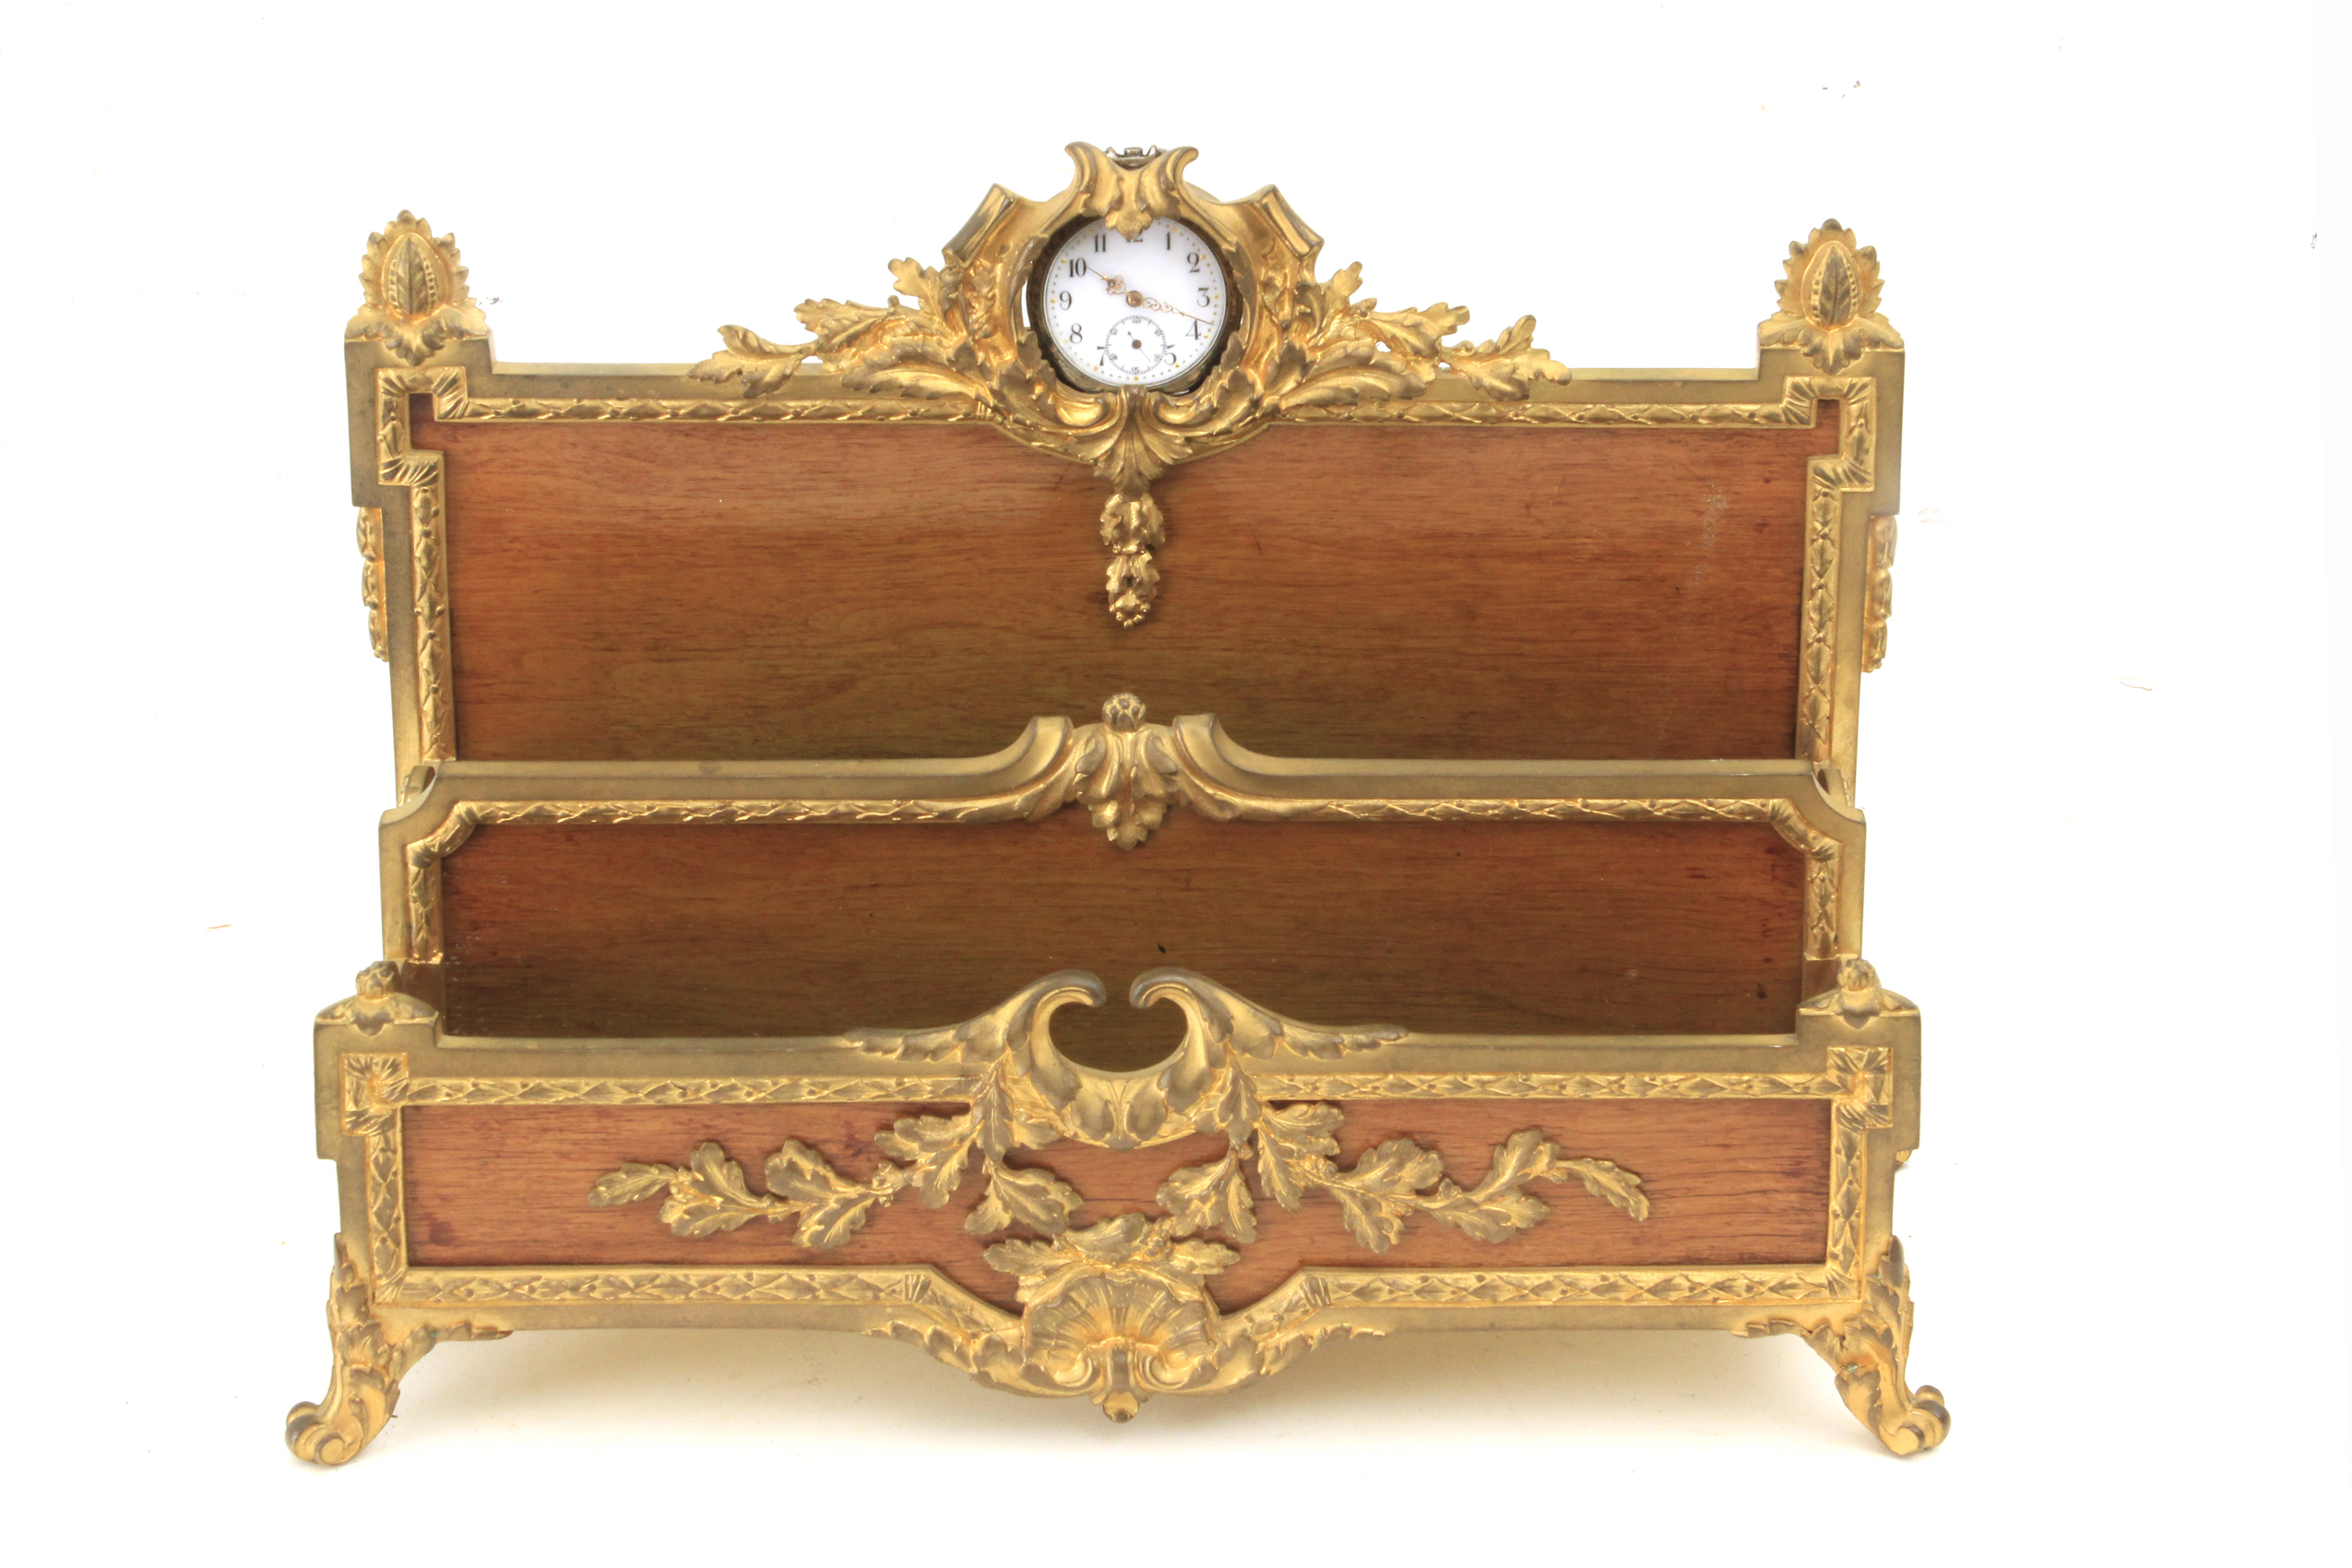 Lot 299 - A 19th century French Empire period walnut and gilt bronze letter rack